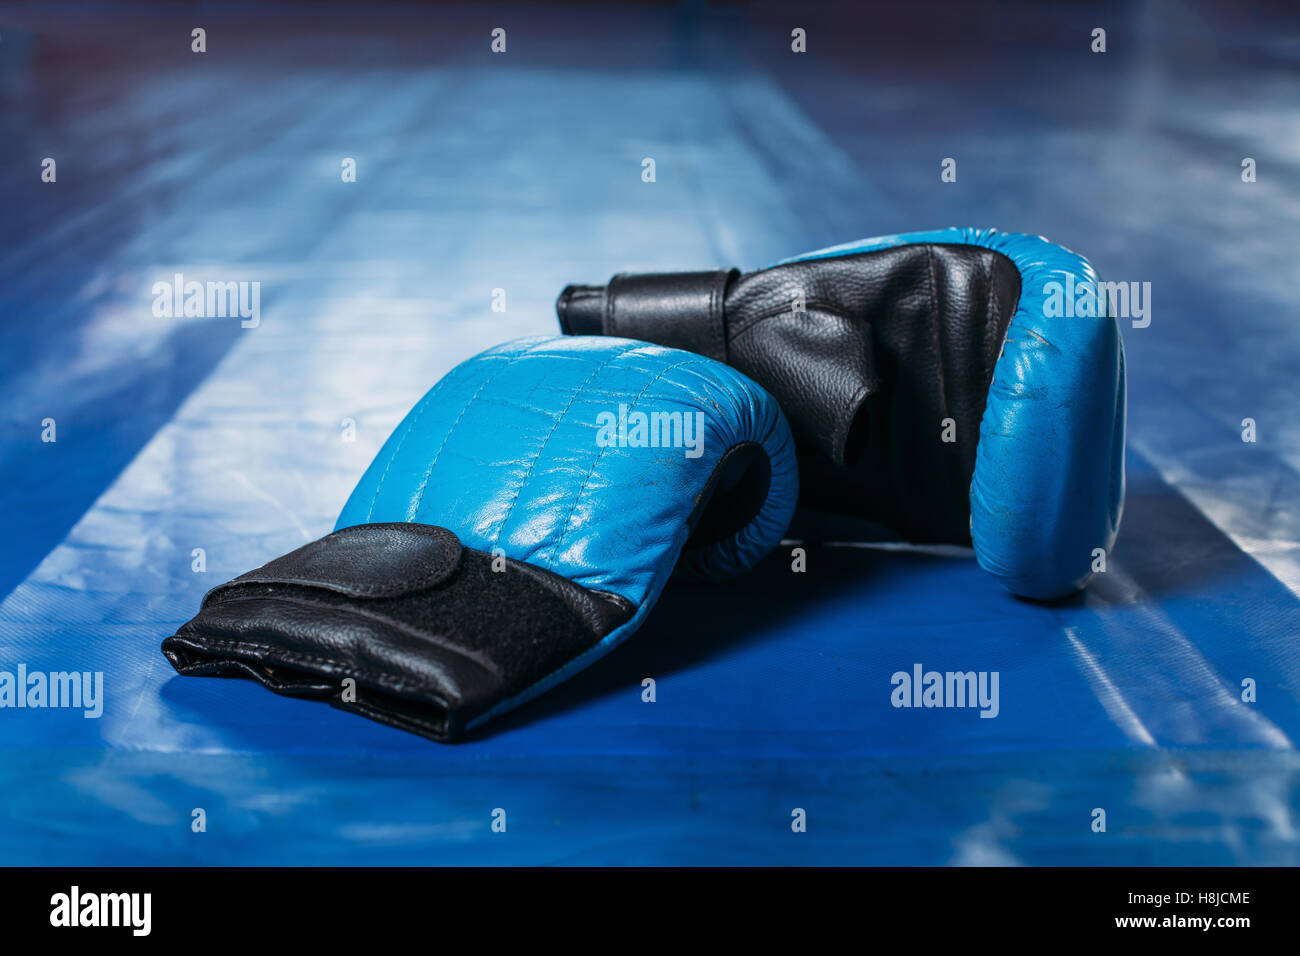 Boxing gloves on the floor of the ring. Stock Foto